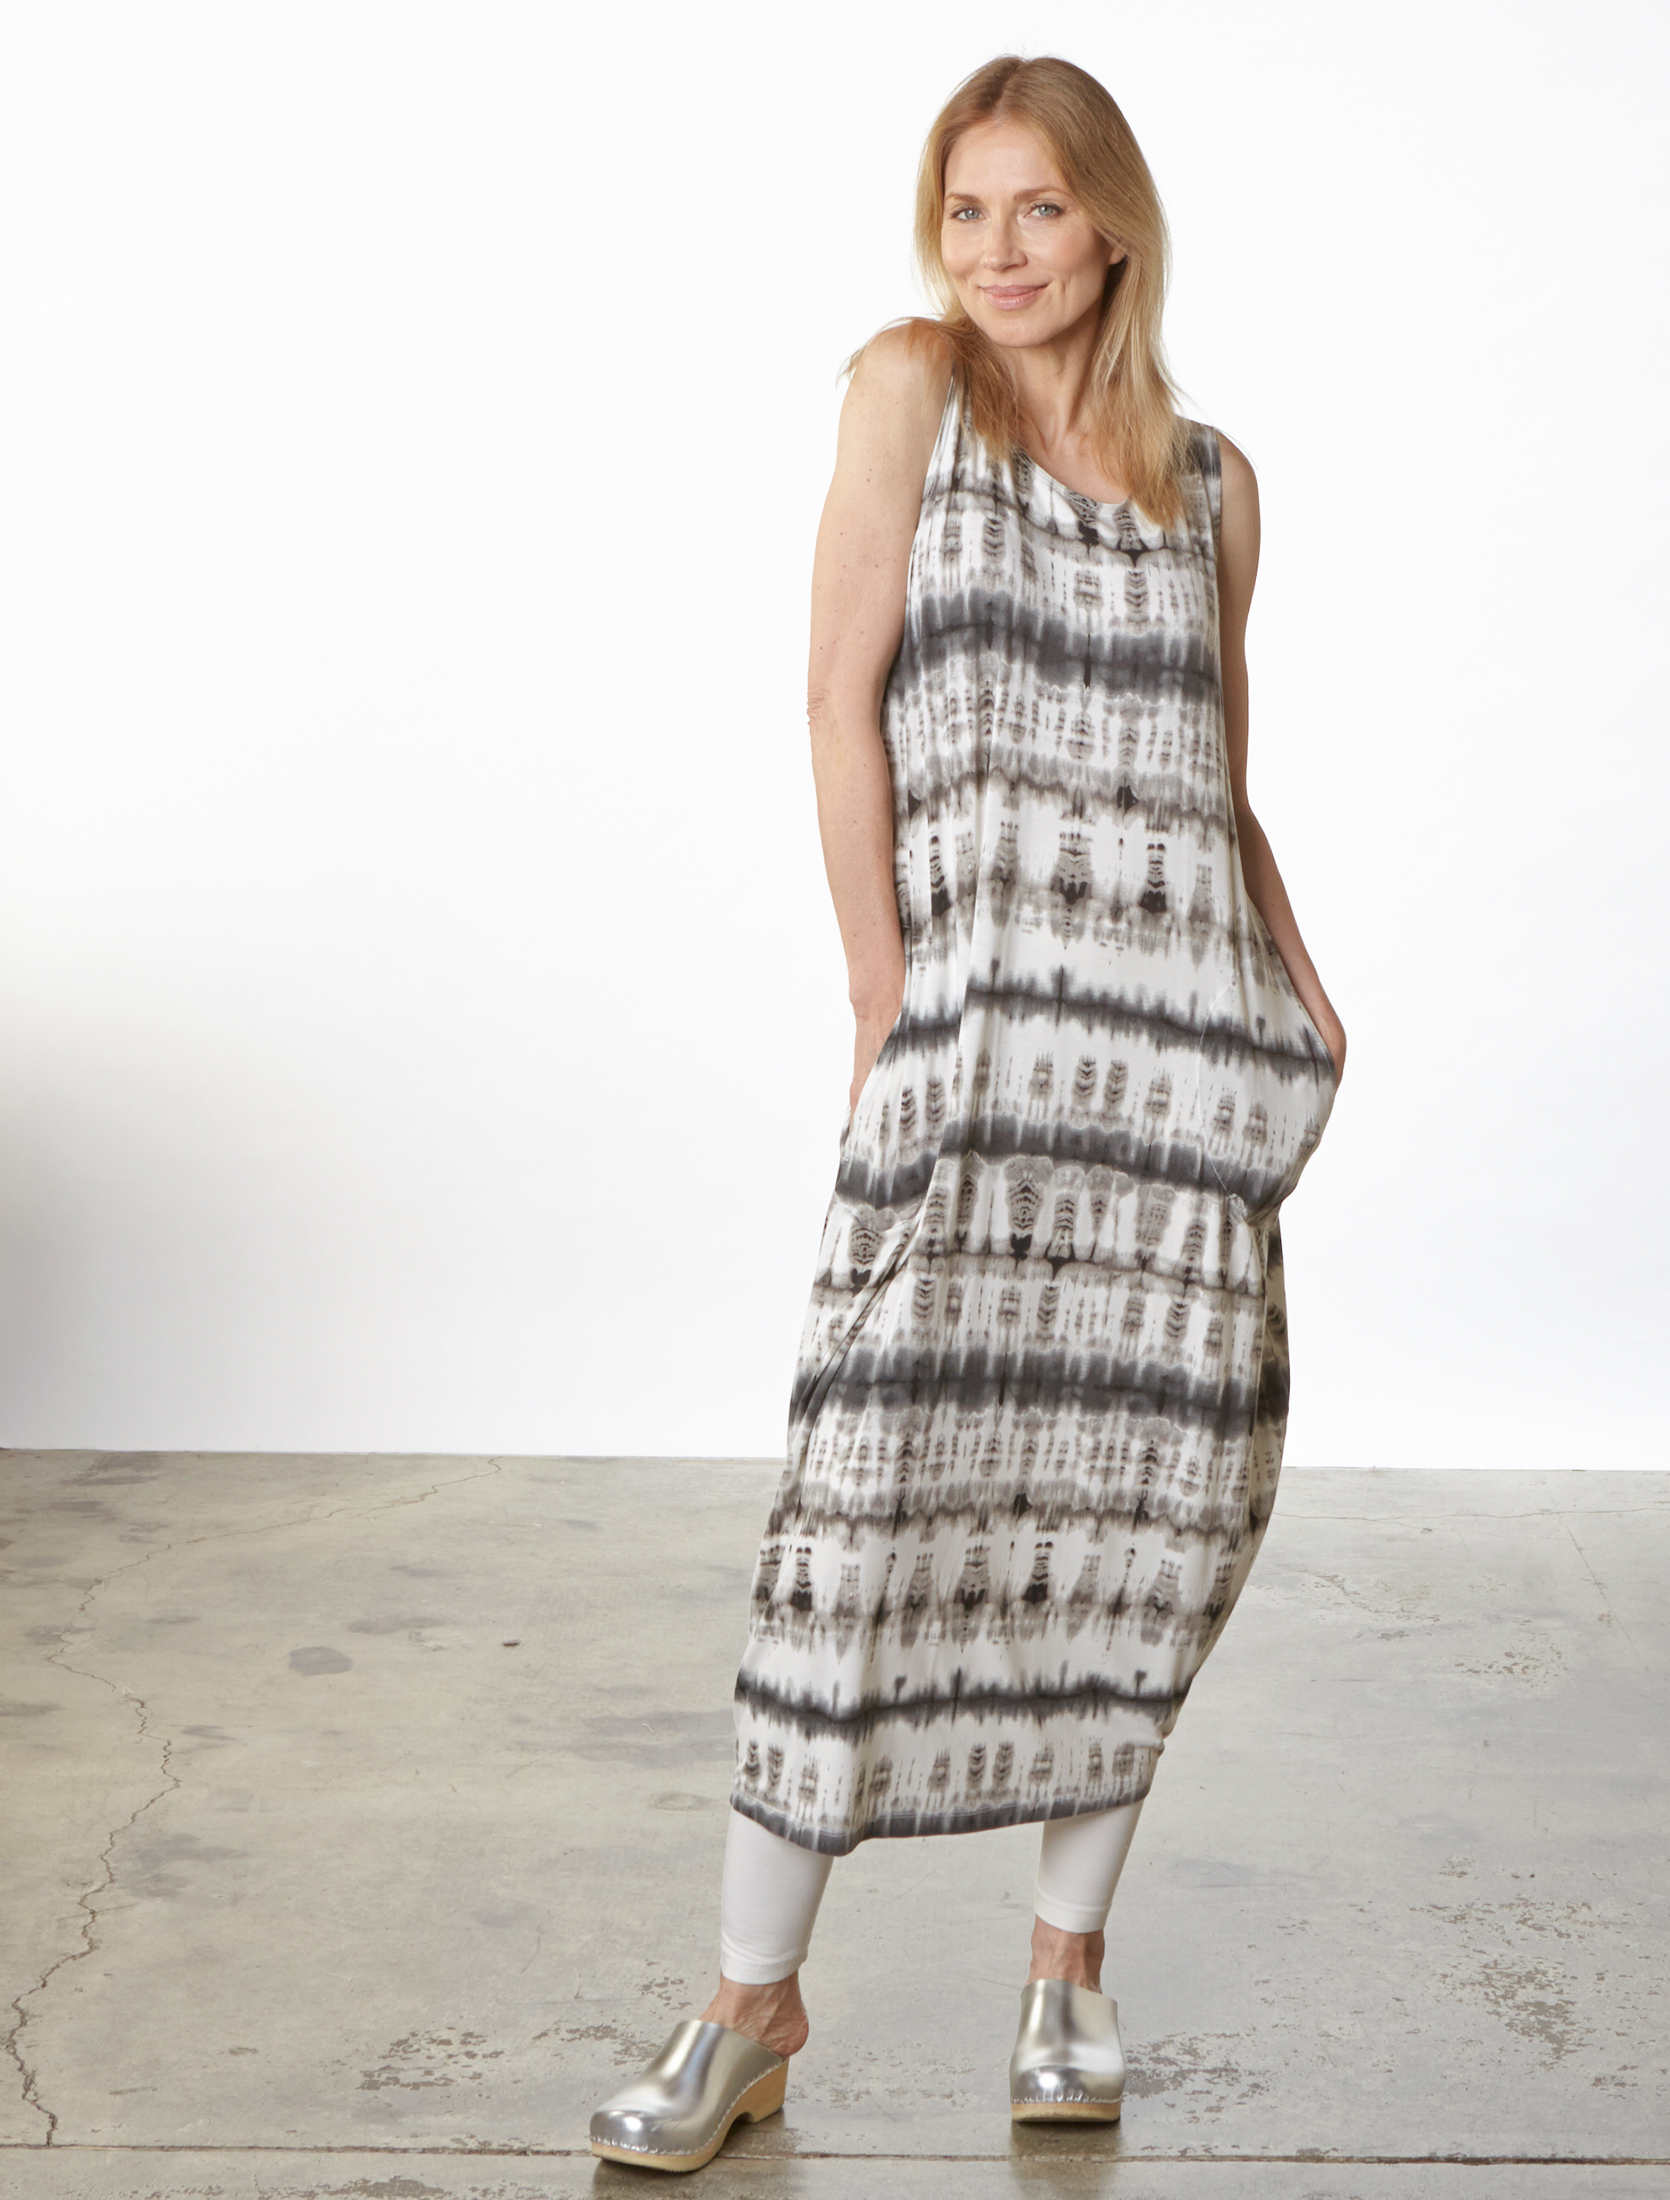 Pippa Dress in Cream Tie Dye Viscose Jersey, Basic Legging in Cream Bamboo Cotton